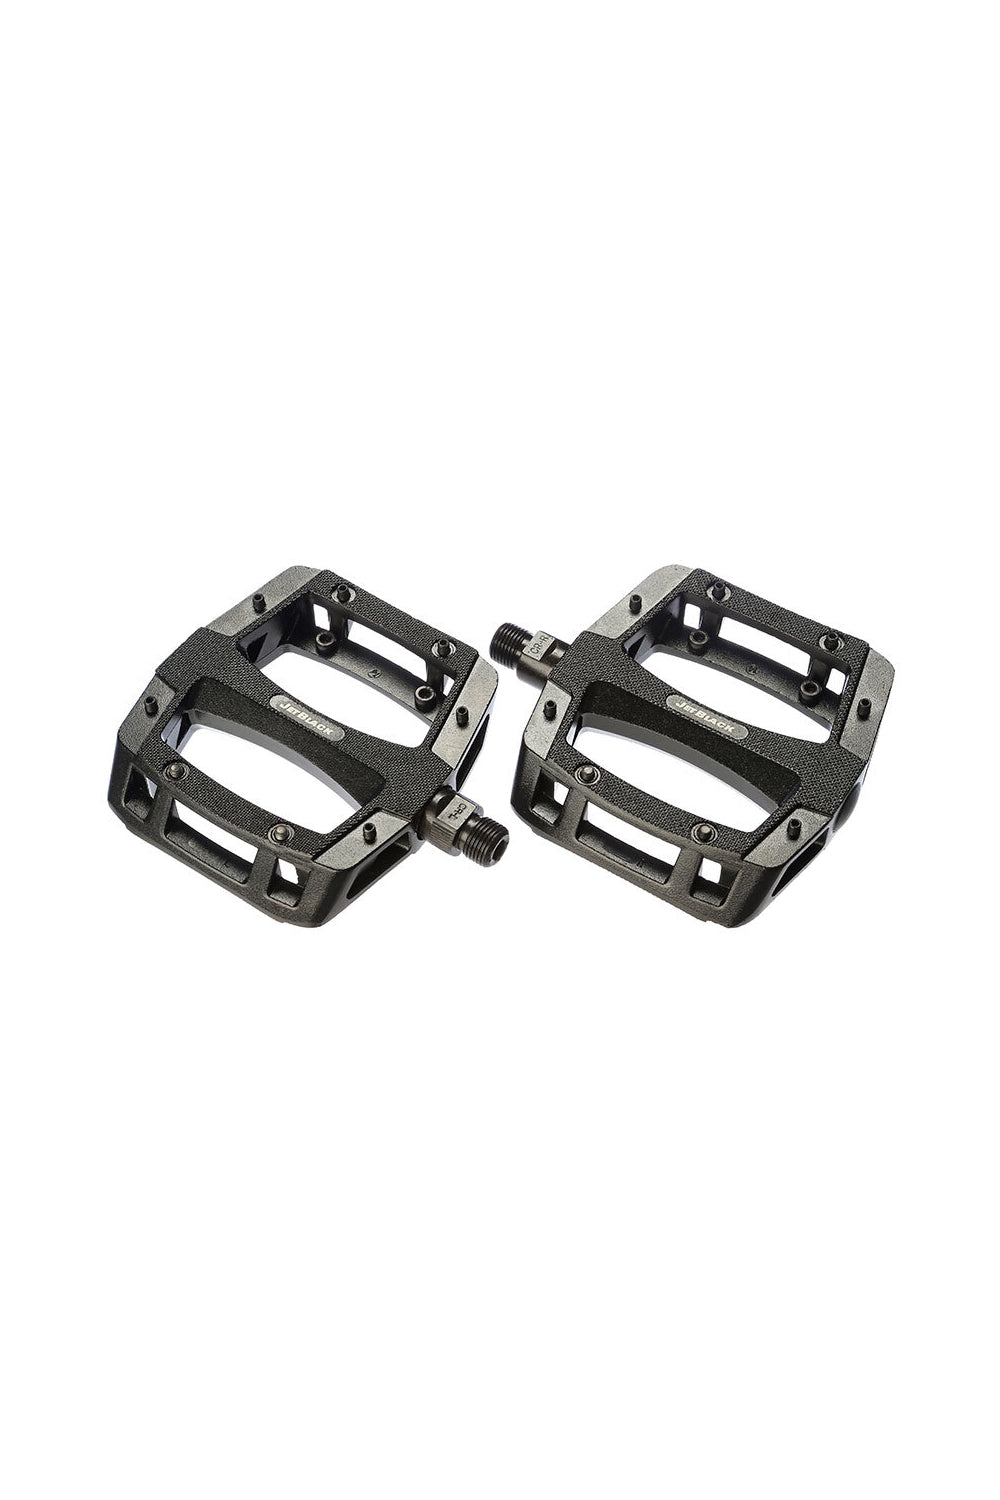 JB Flat Out Alloy MTB Pedals Painted Black Ball Bearings Cromo Axle